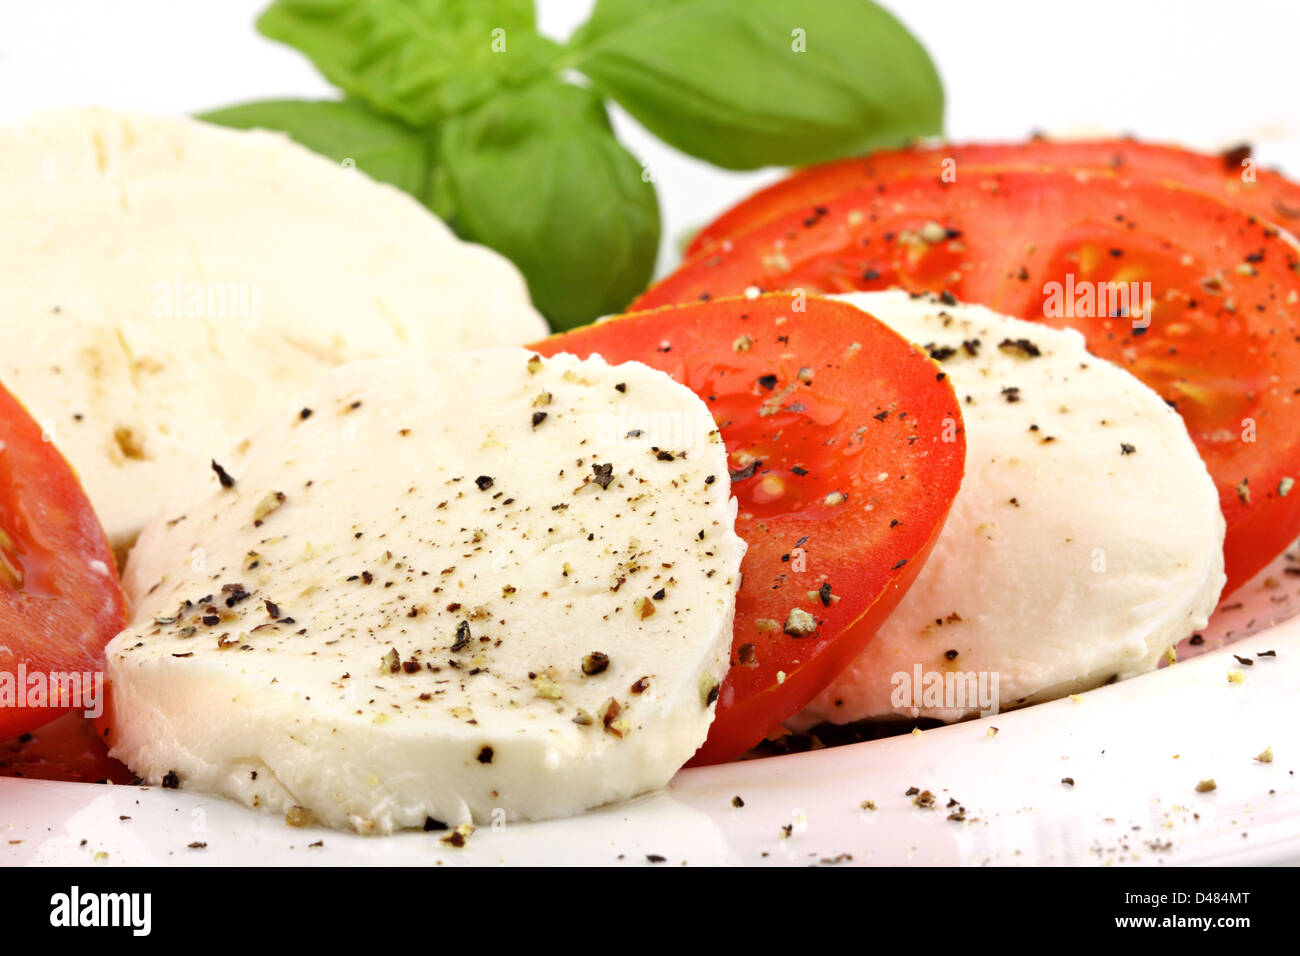 mozzarella and tomato slices with pepper and basilicas. - Stock Image